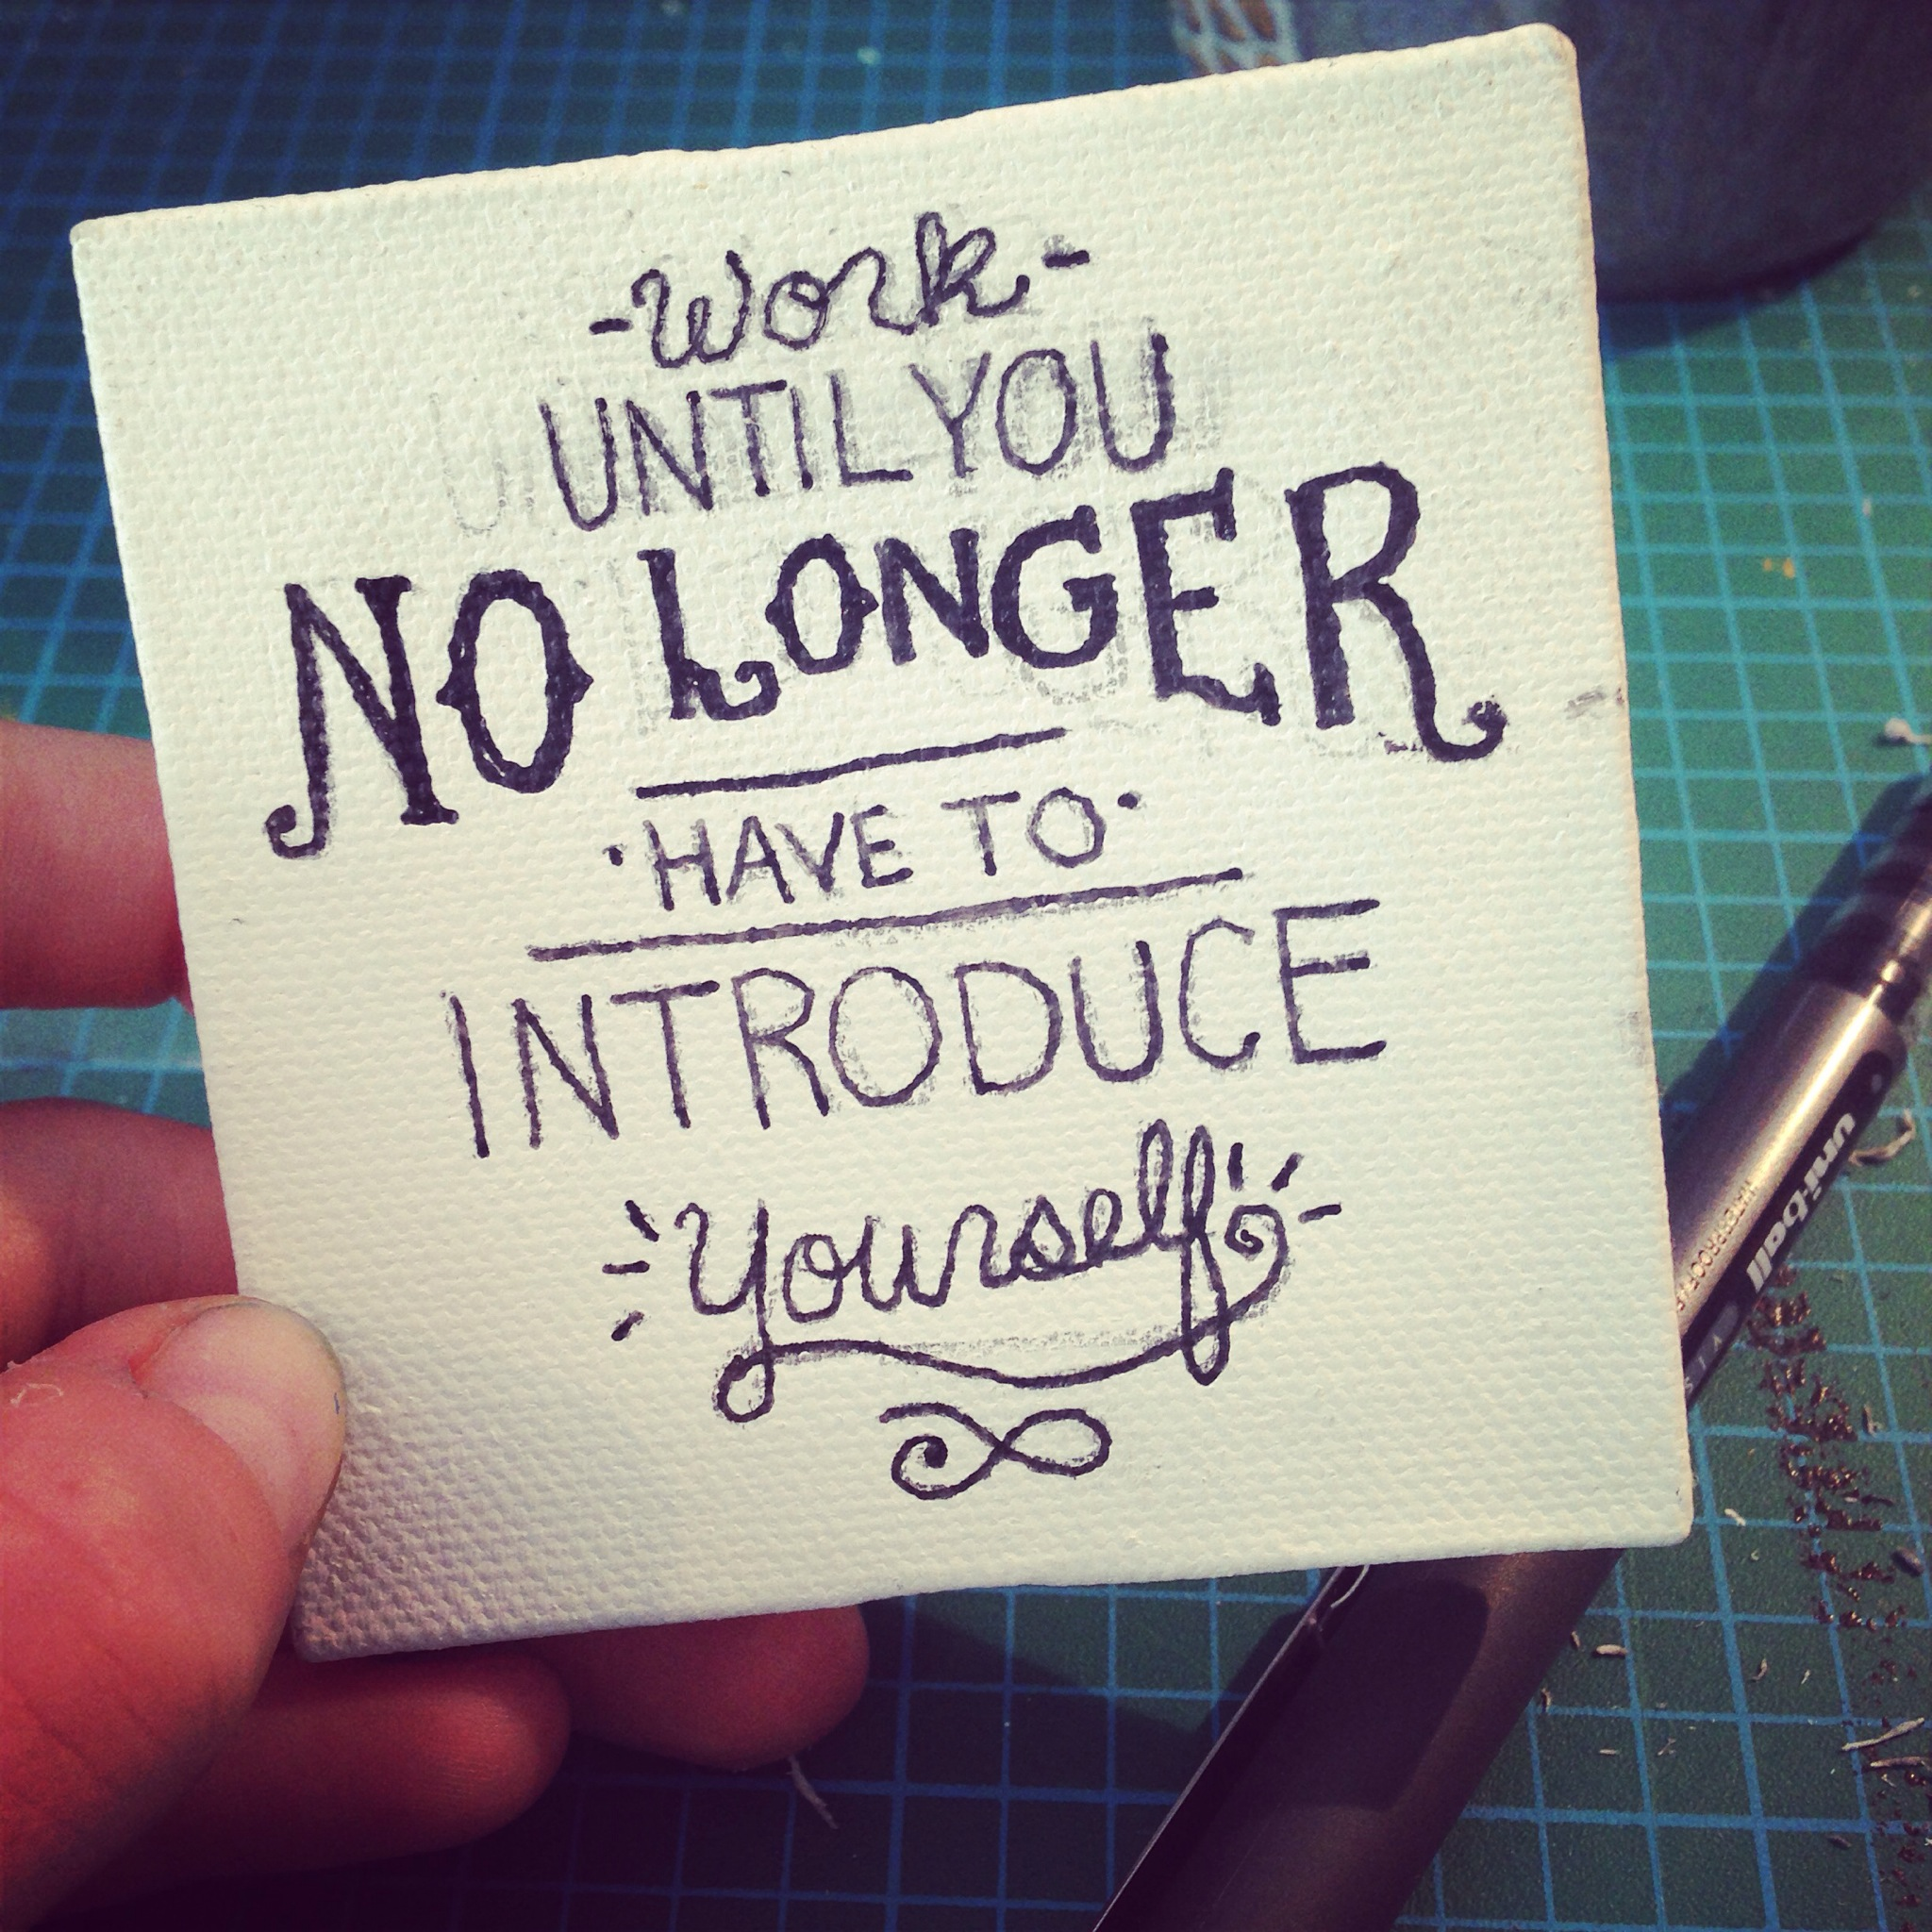 20 Inspirational Quotes To Brighten Your Day: Inspirational Quotes Brighten My Day.